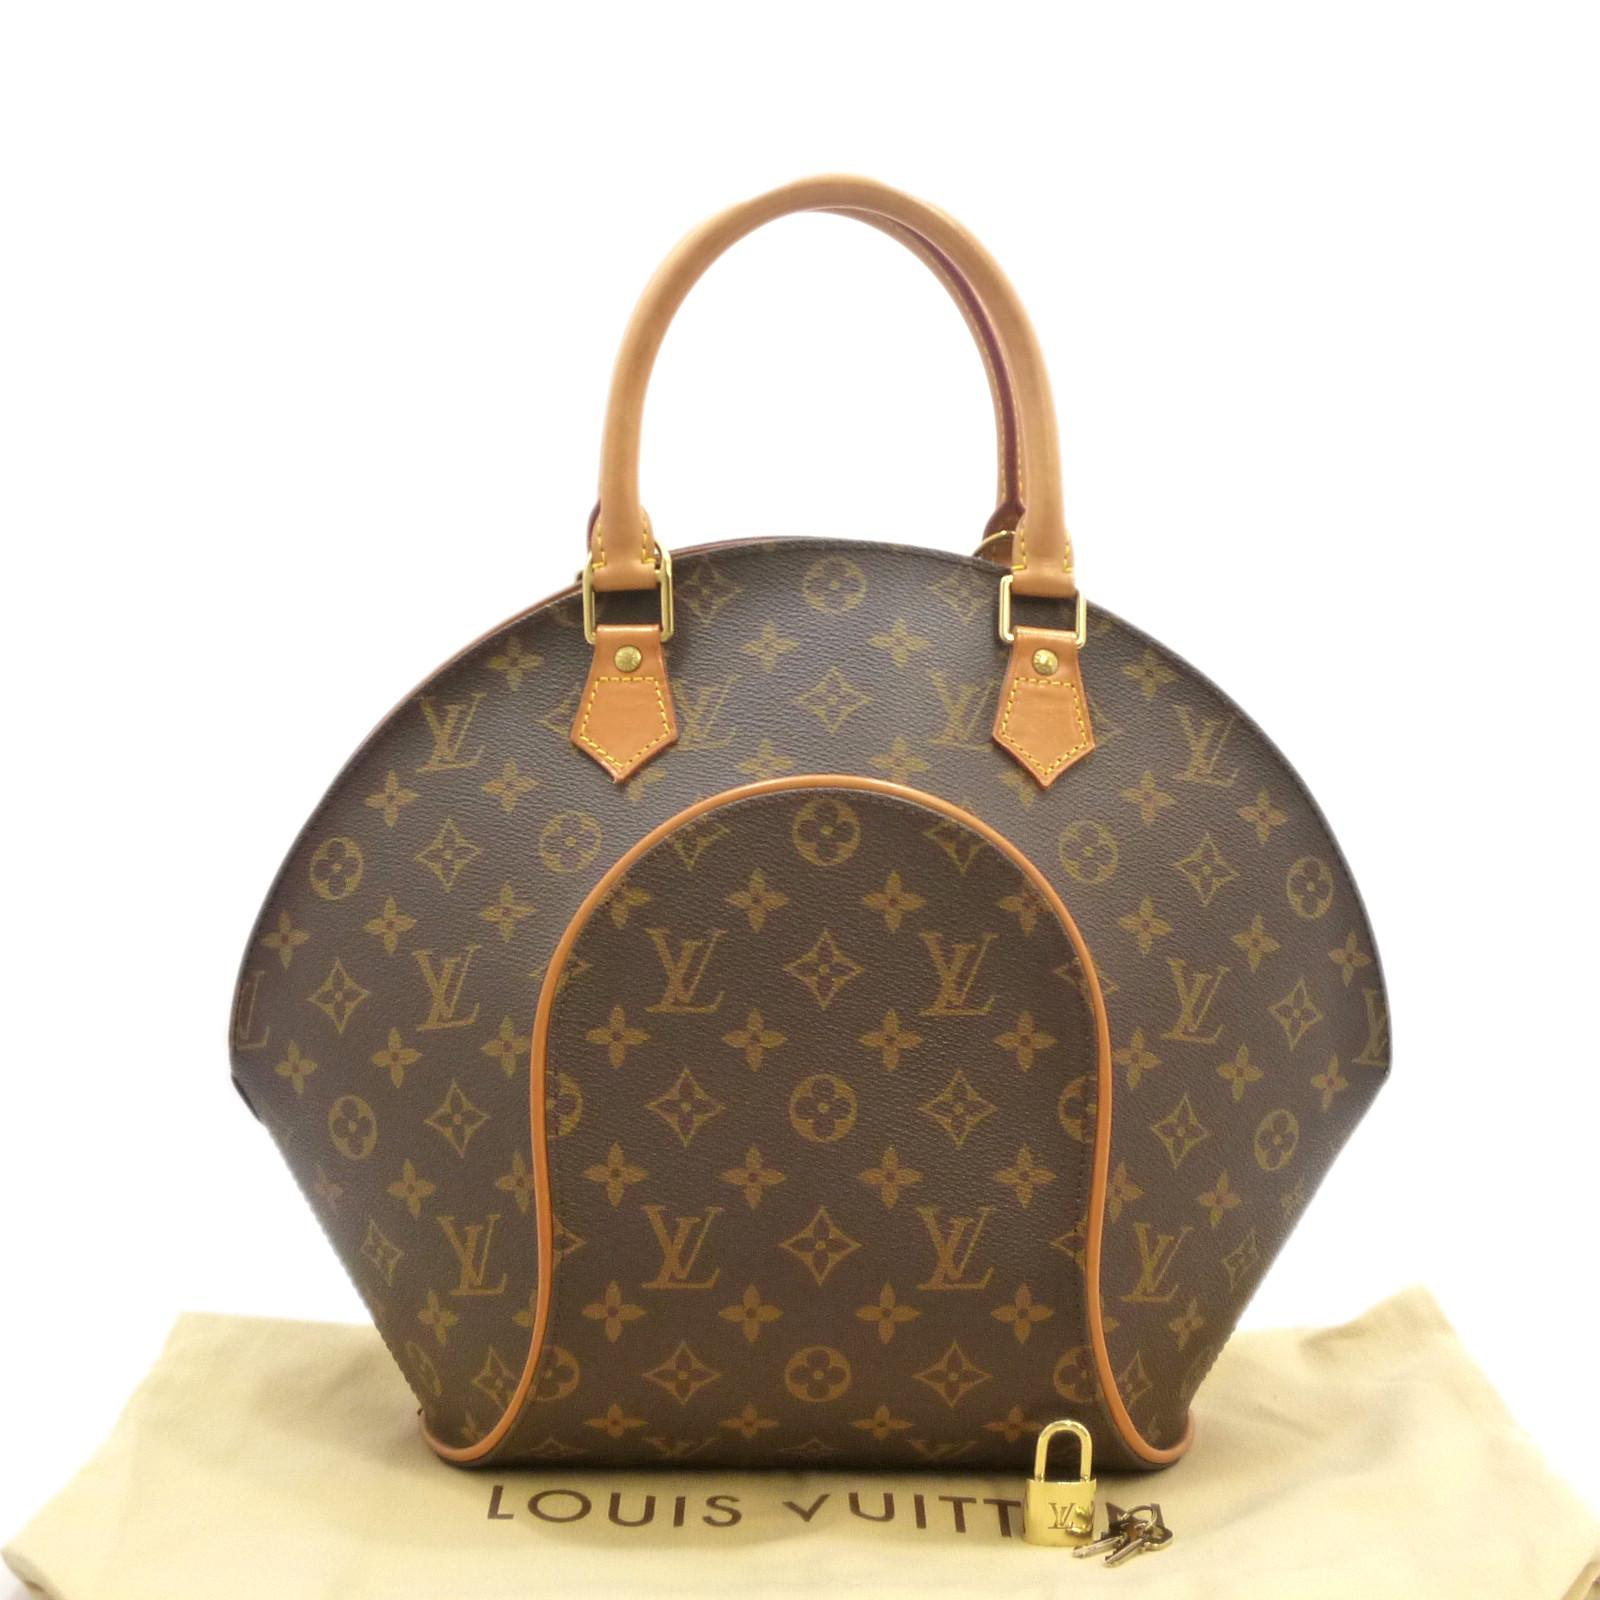 Details about Authentic LOUIS VUITTON Ellipse MM Hand Bag Monogram Canvas  M51126  S207055 5a2eaecf016fd